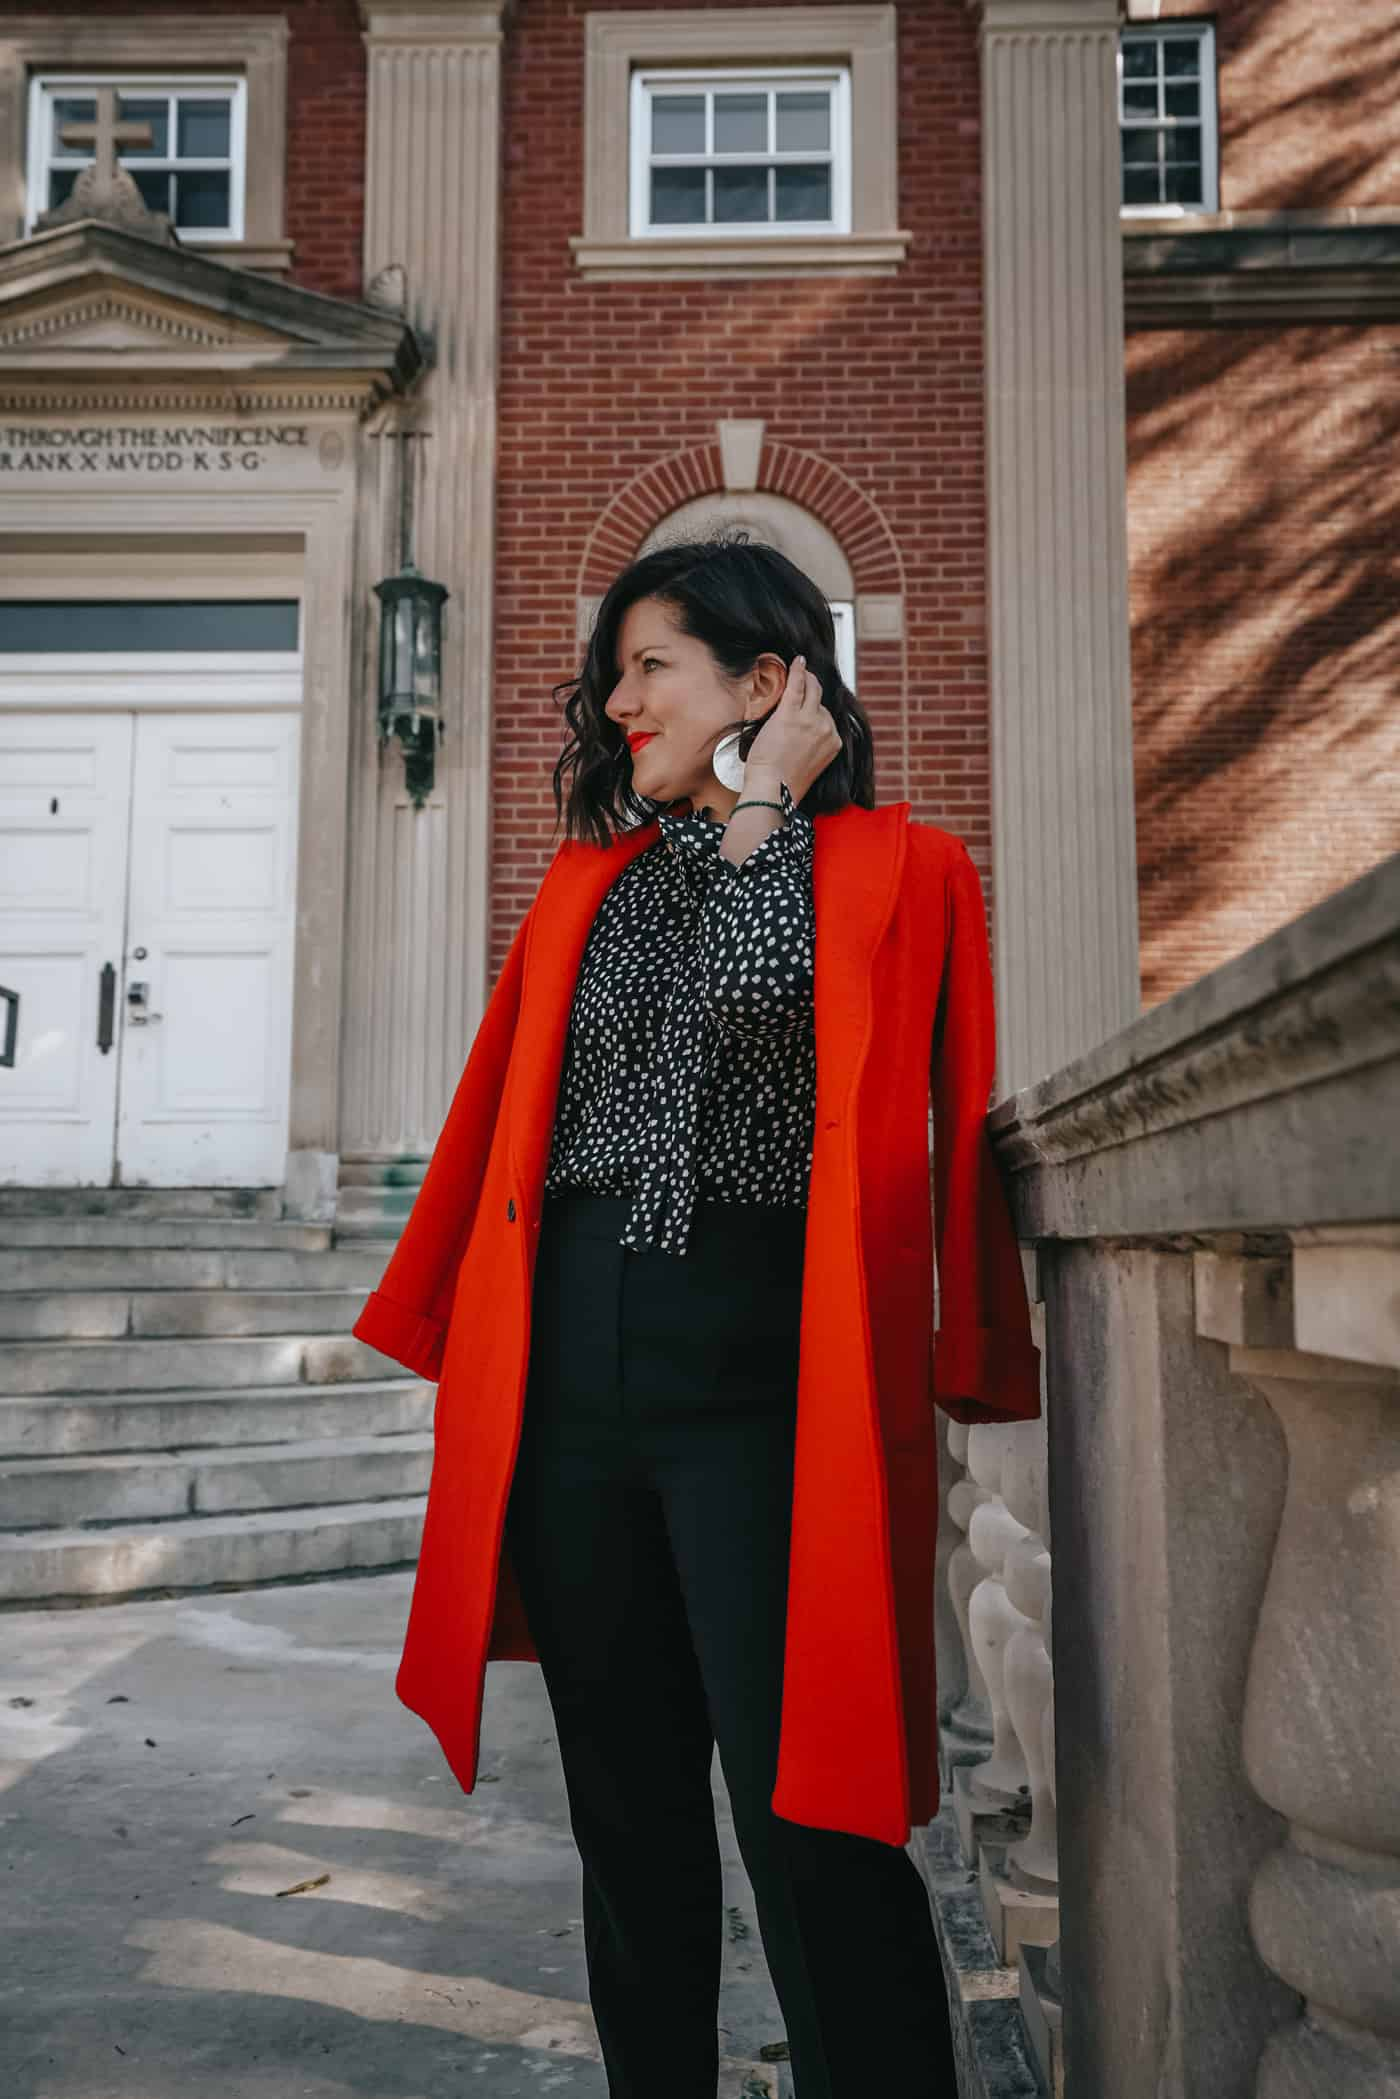 Anna Baun of A Lily Love Affair shares fall fashion under $100 wearing black pants and a red coat